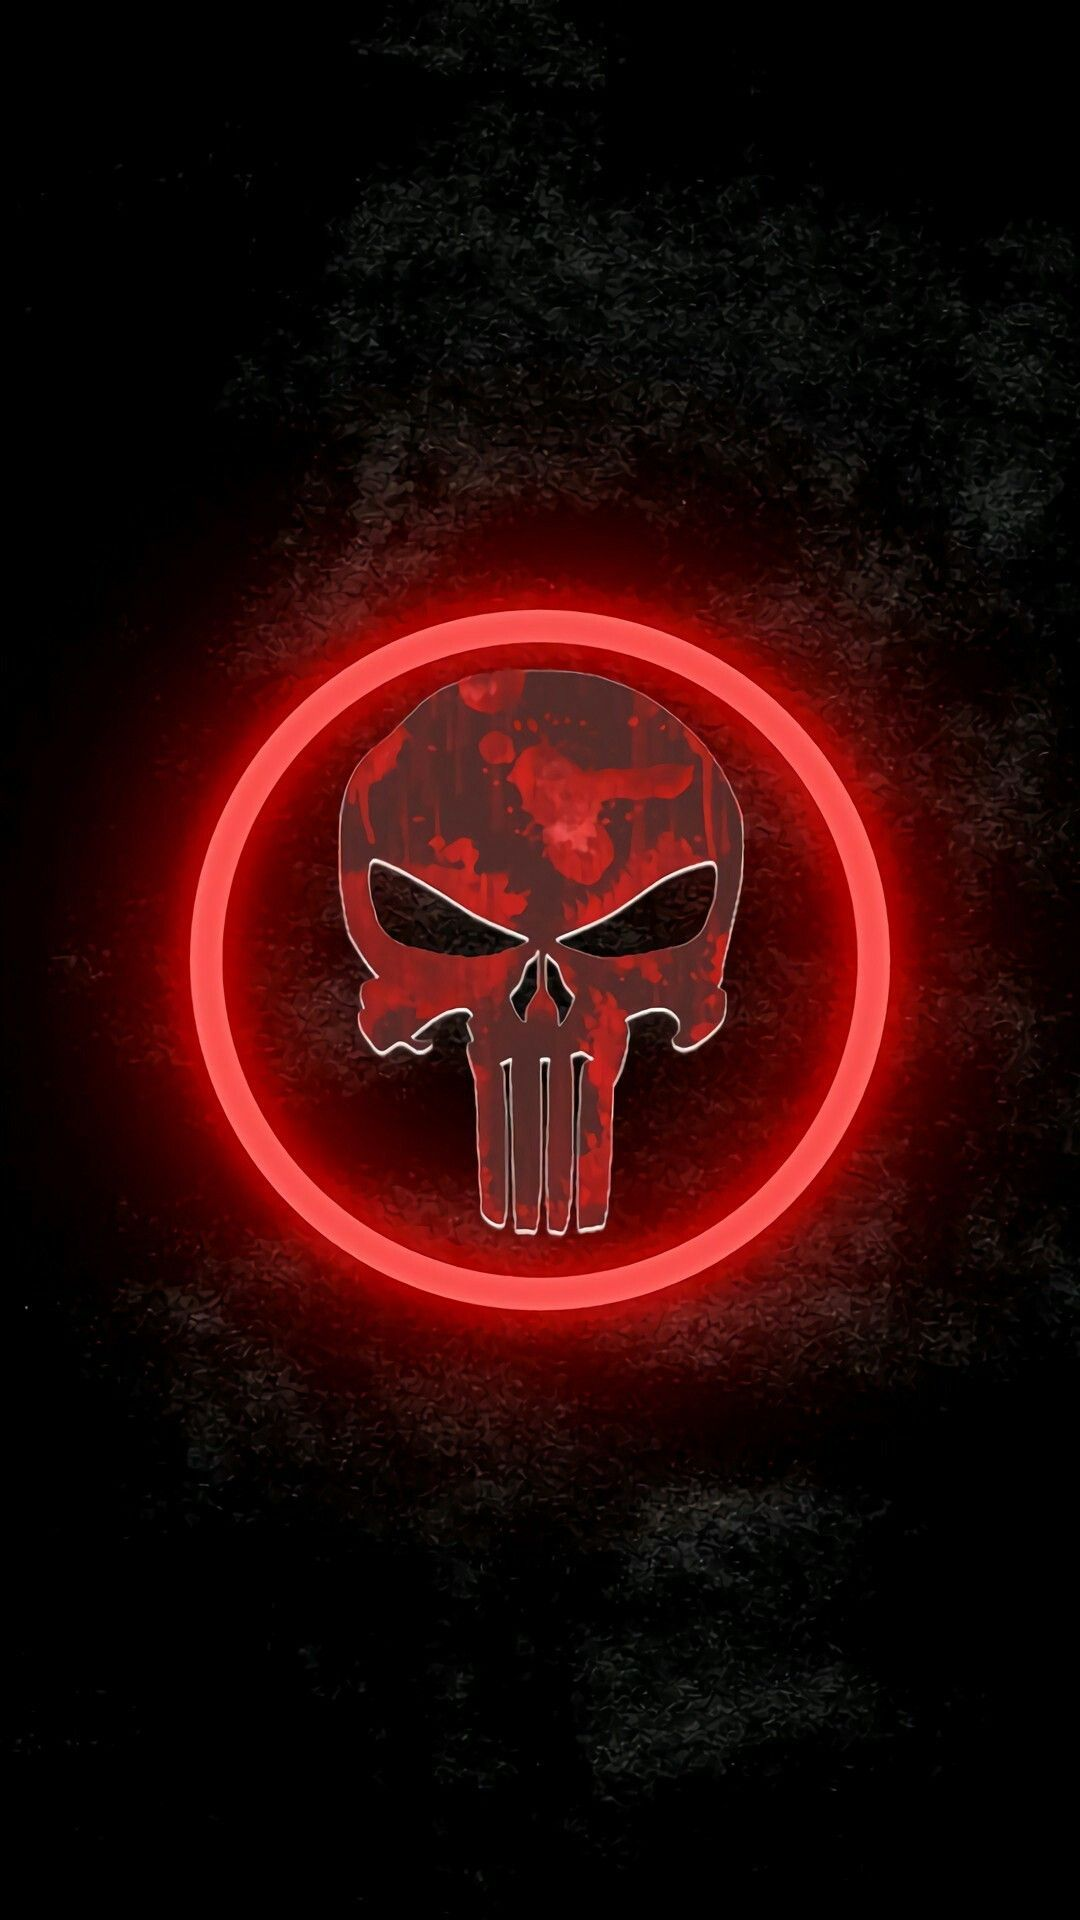 Punisher Phone Wallpapers - Top Free Punisher Phone ...